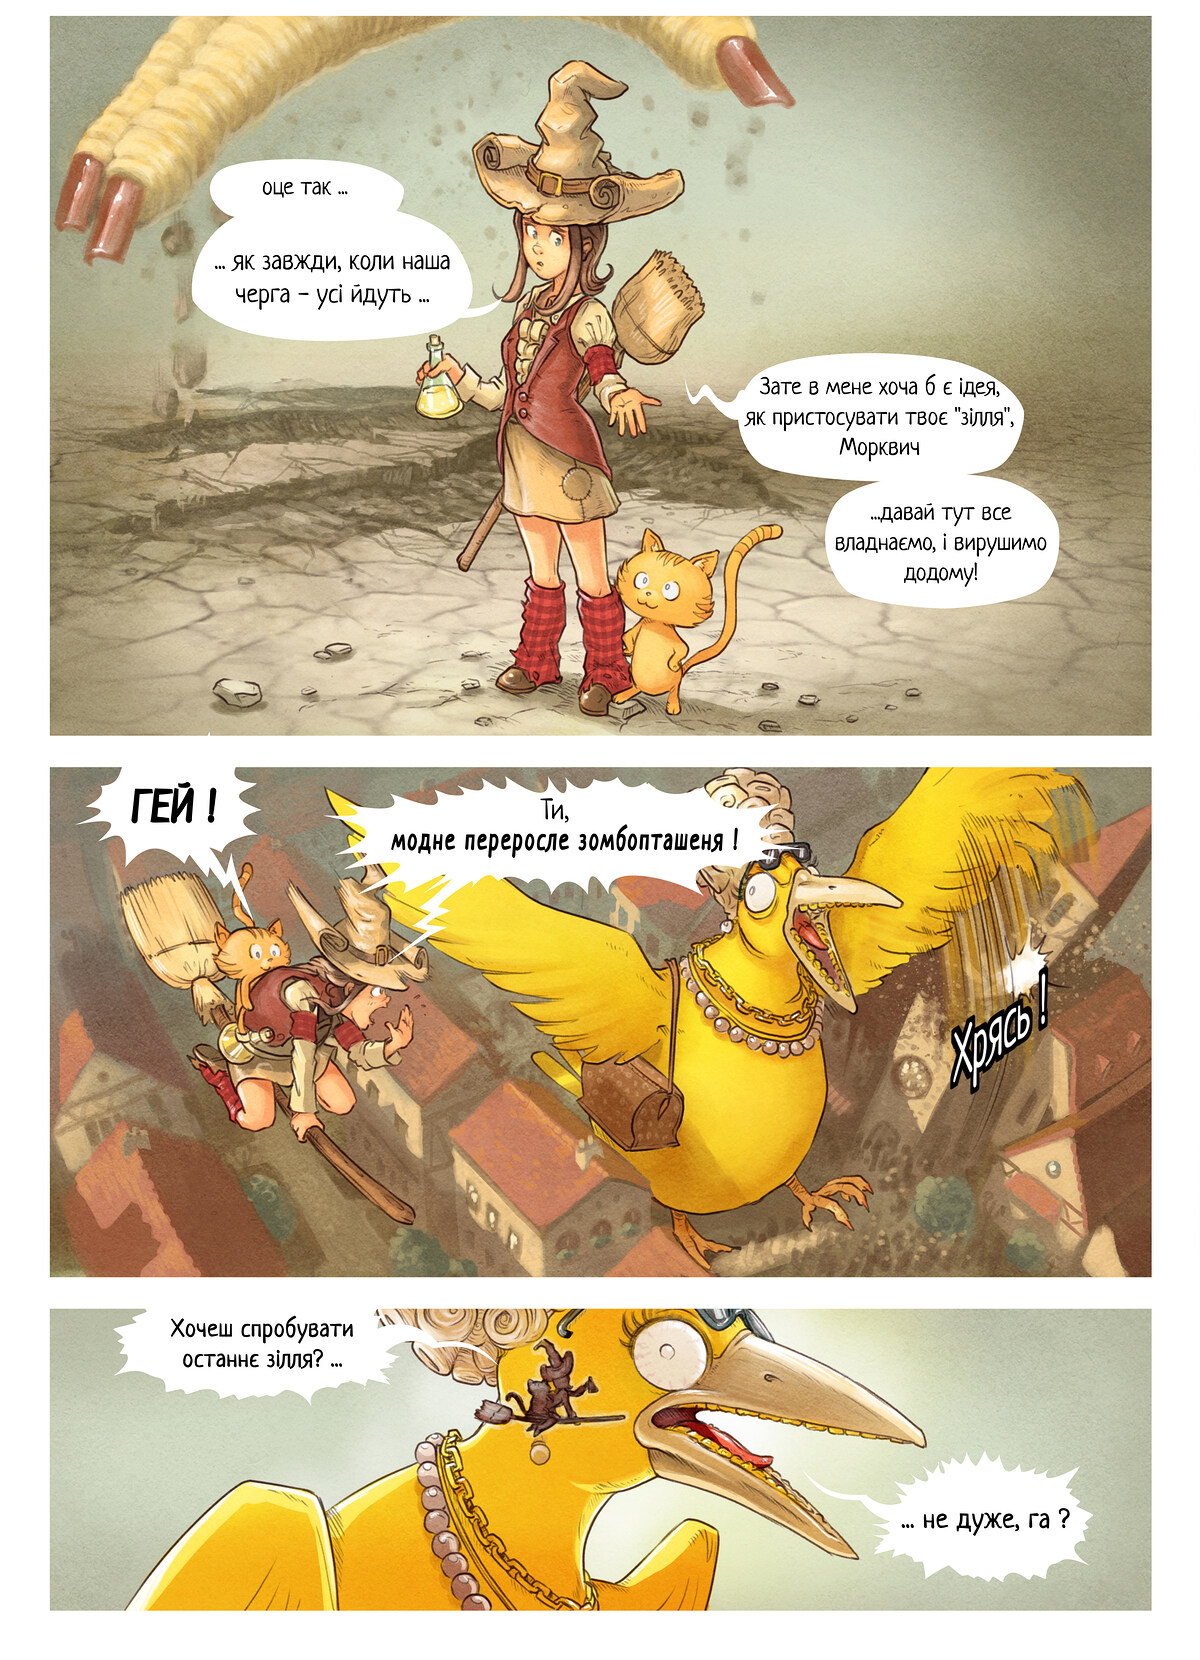 A webcomic page of Pepper&Carrot, епізод 6 [uk], стор. 8